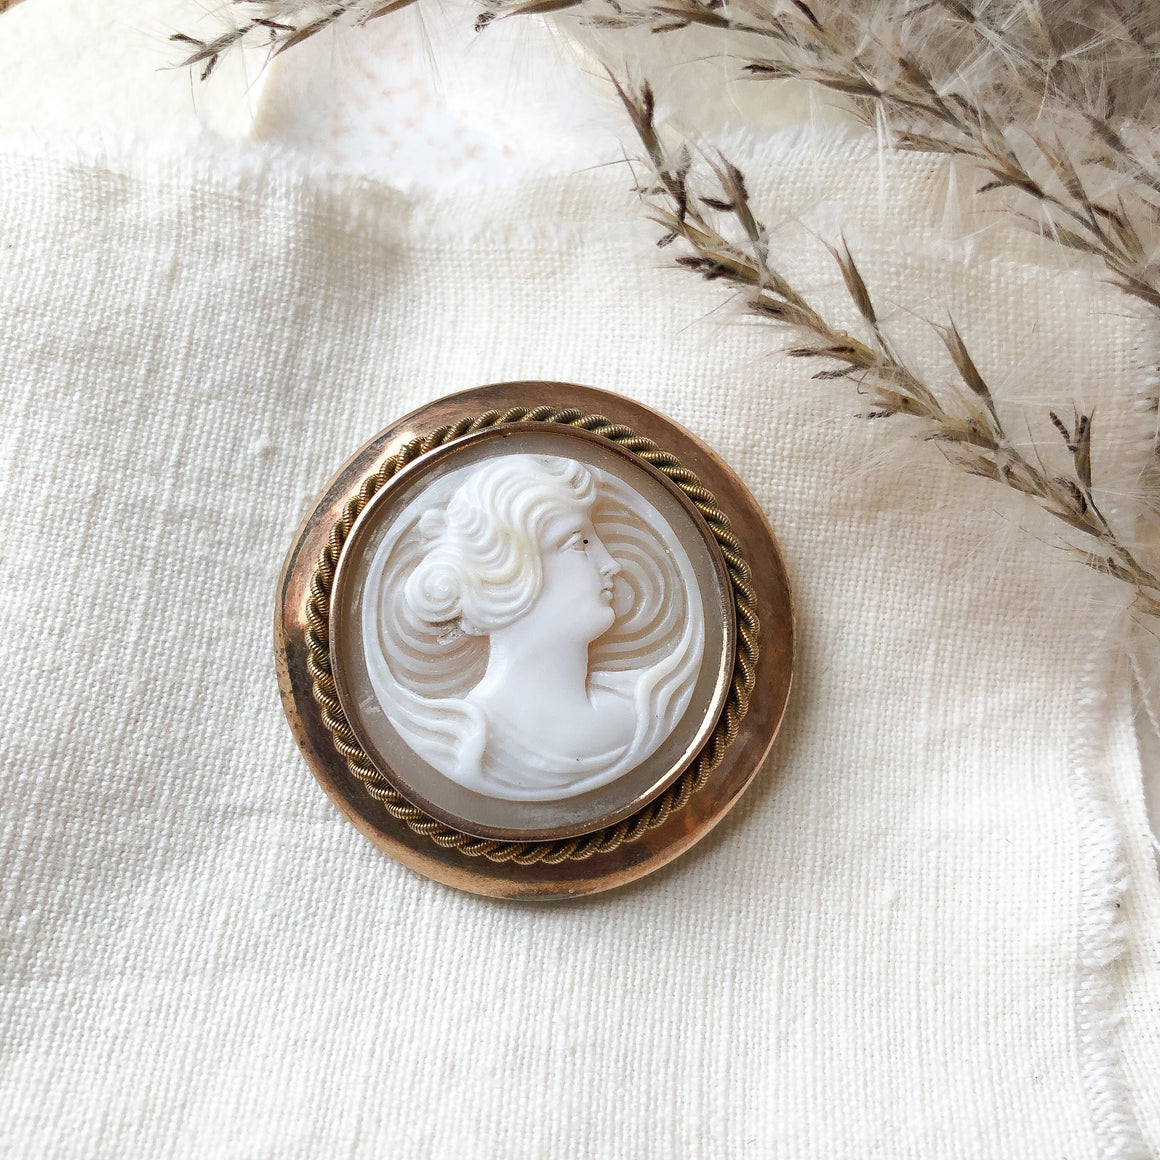 9k shell cameo brooch